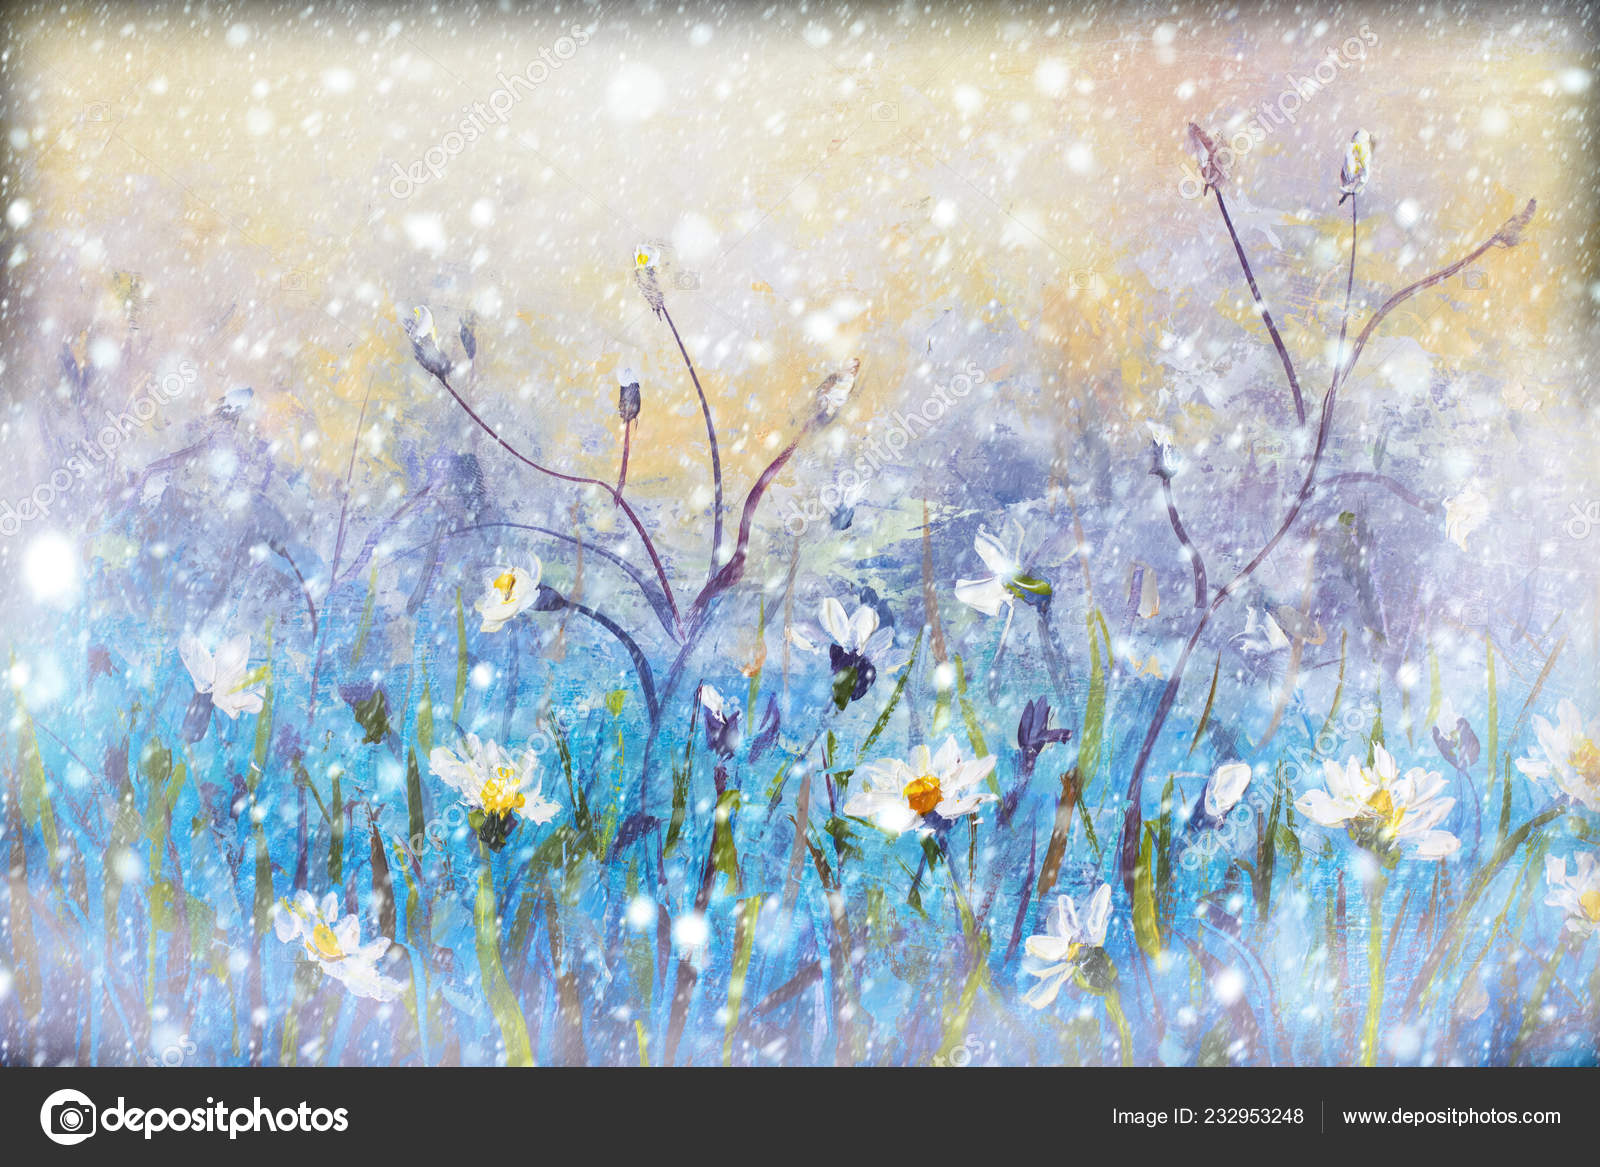 Image result for wildflowers in snow